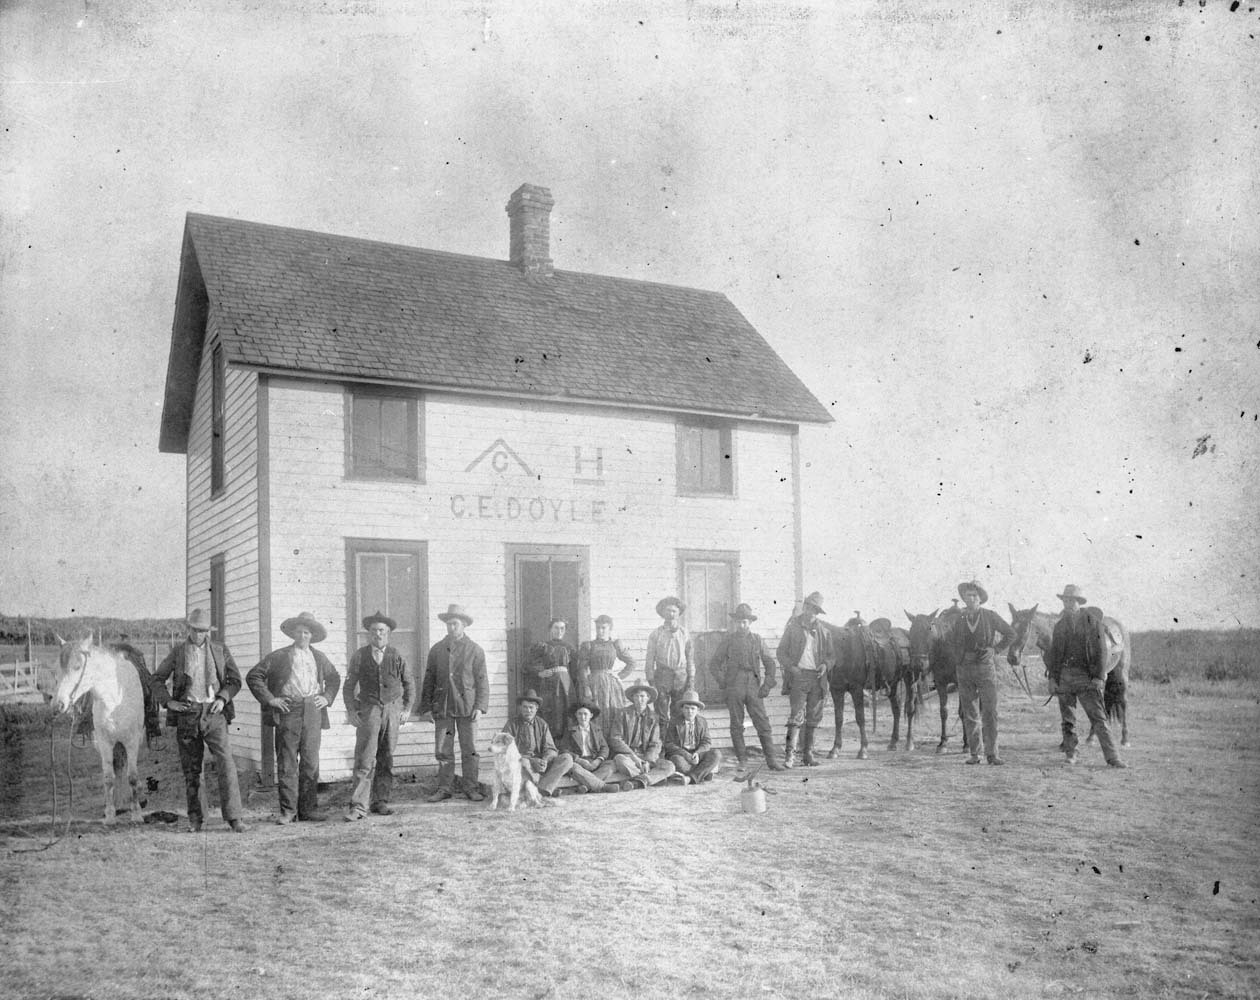 ^c ranch owned by C. E. Doyle, Clark County, Kansas